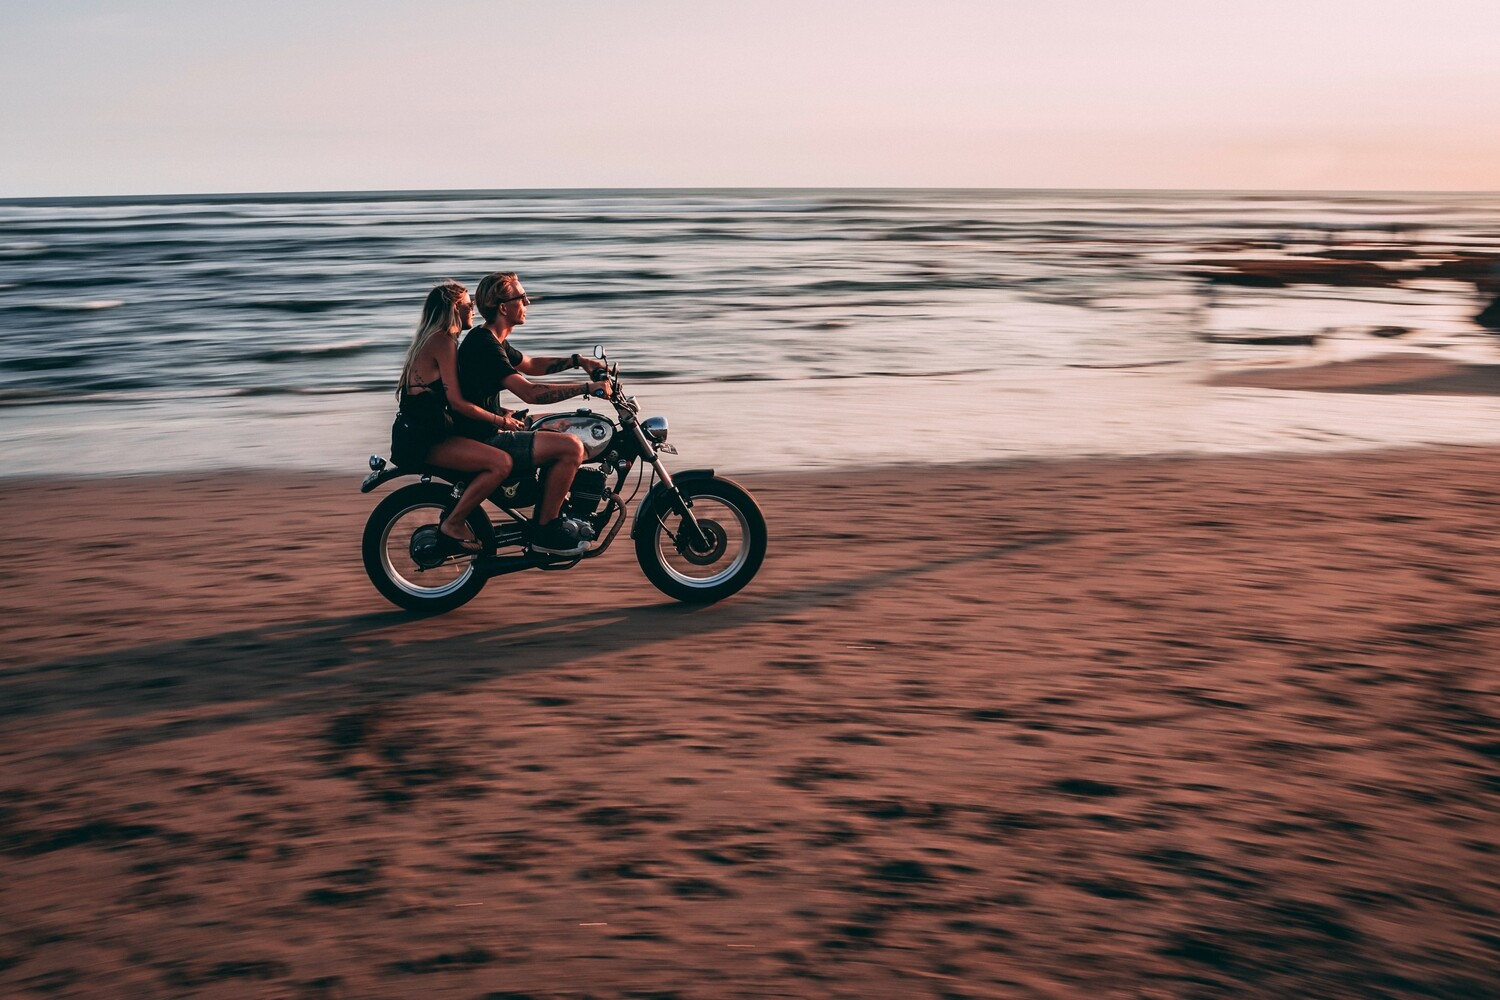 A couple riding a motorbike on the beach